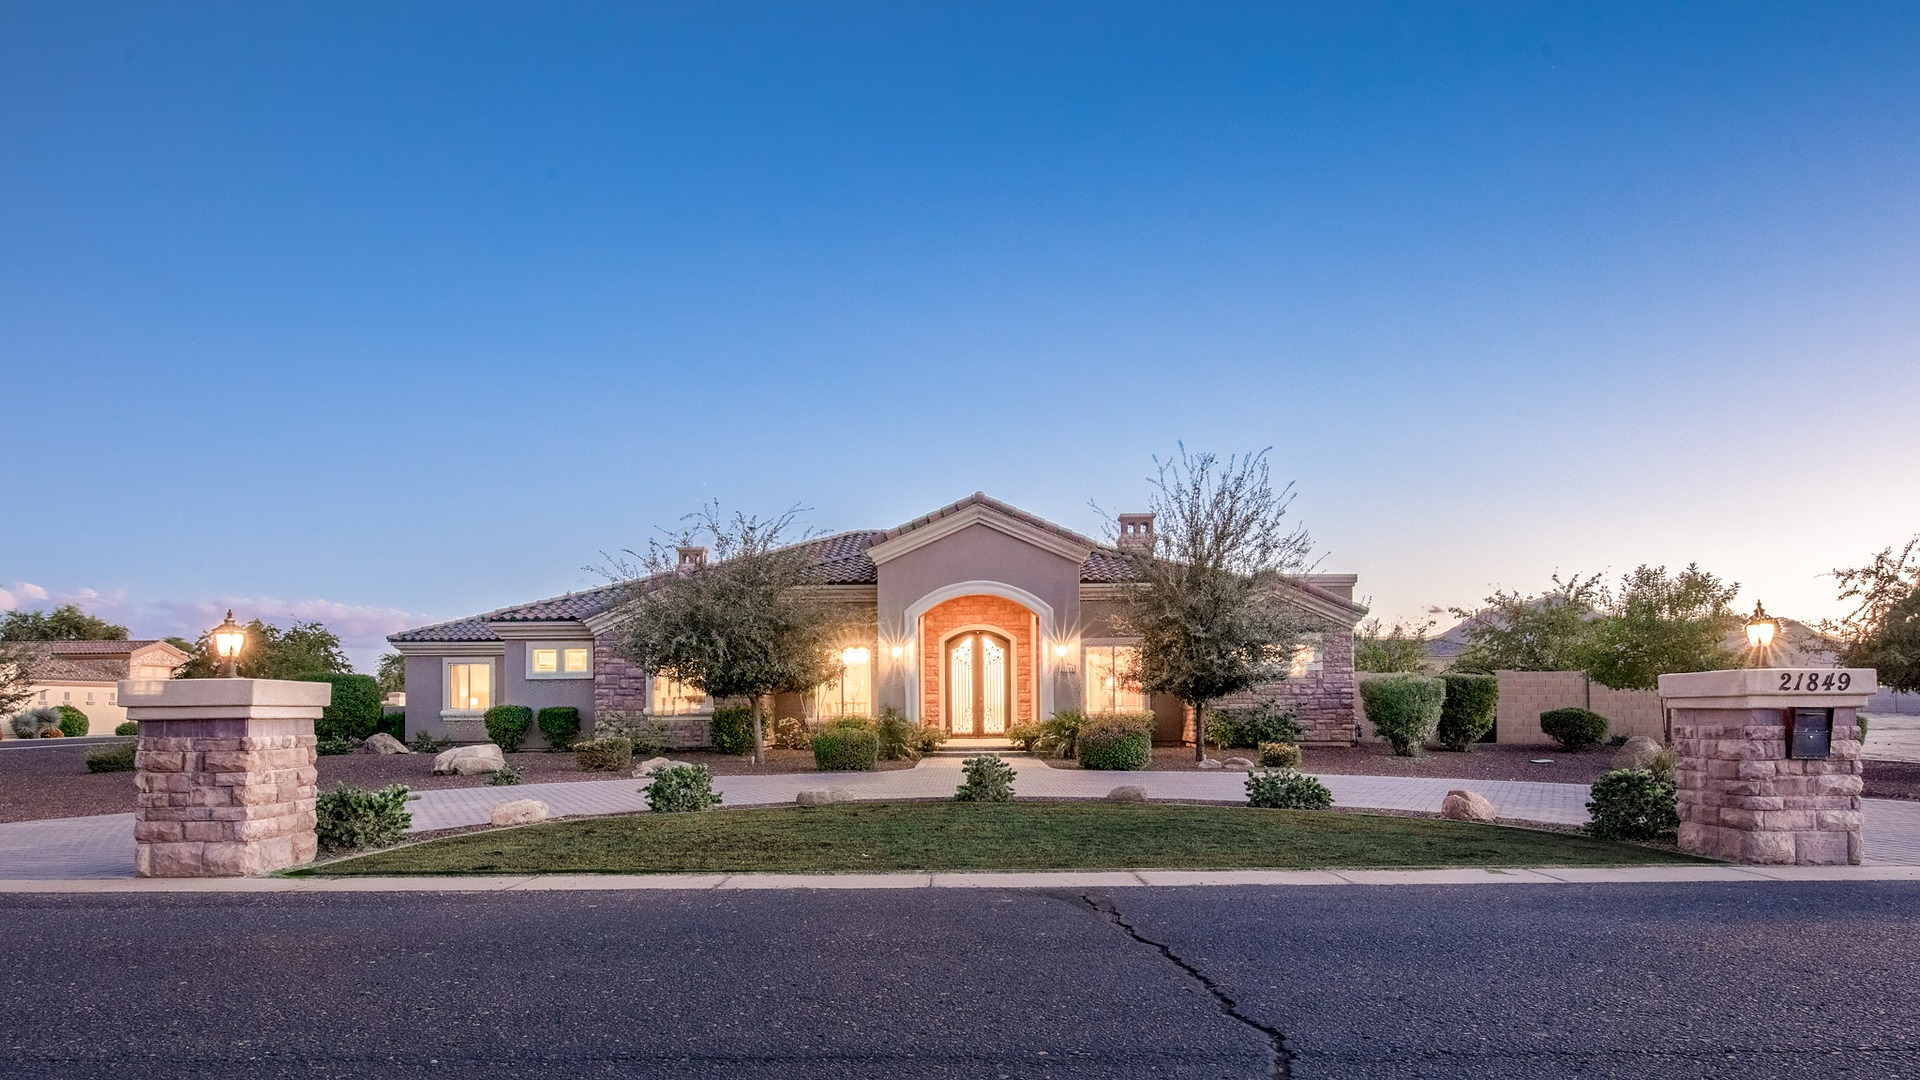 New Price! 21849 E Pegasus Pkwy Queen Creek, AZ 85142 - Pegasus Airpark | Amy Jones Group